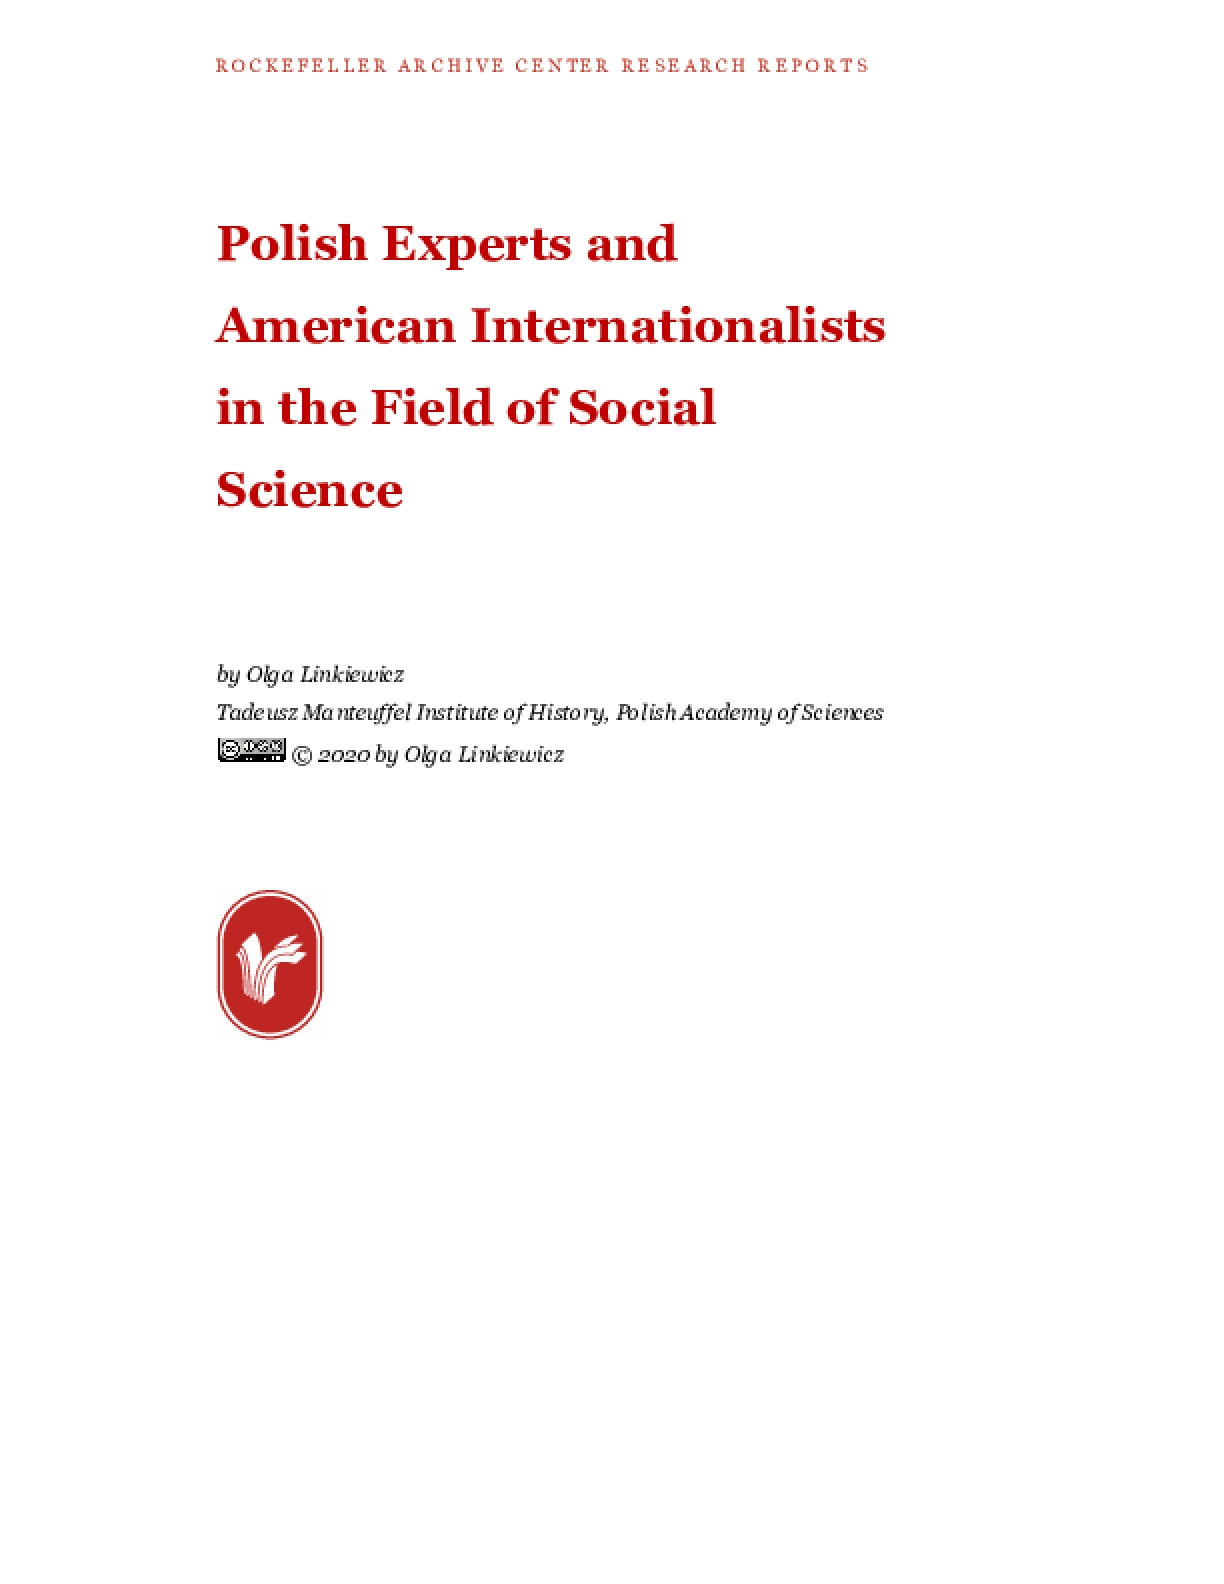 Polish Experts and American Internationalists in the Field of Social Science